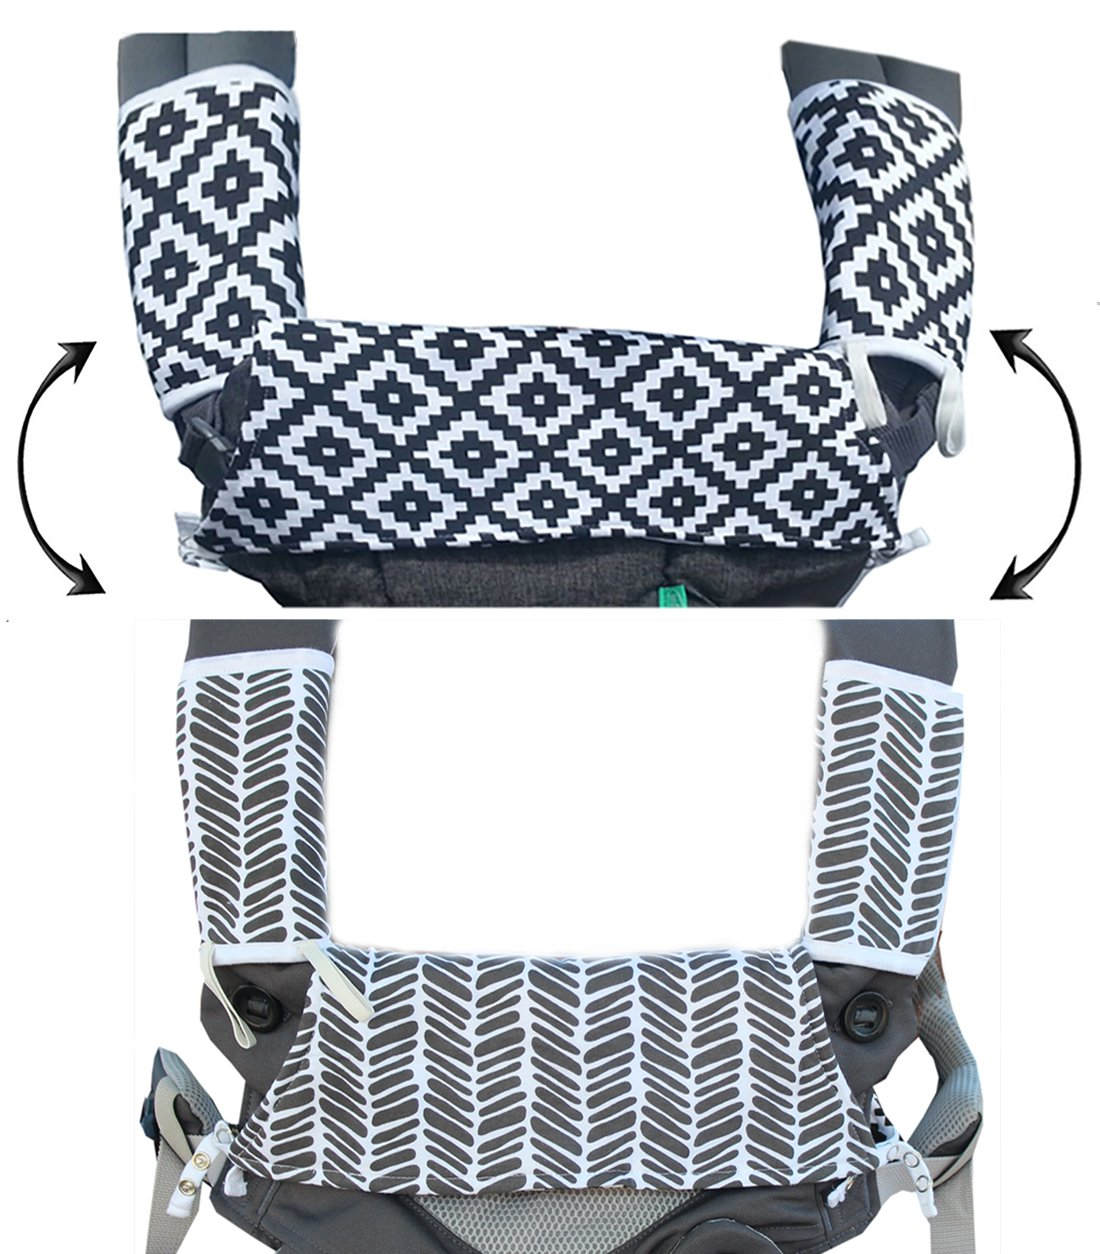 Drool & Teething Pad | Fits All Carriers | Reversible Organic Cotton 3-Piece Set - Ideal for Infant Toddler Girls & Boys [Patent Pending] 71Pk2BtAc8HL